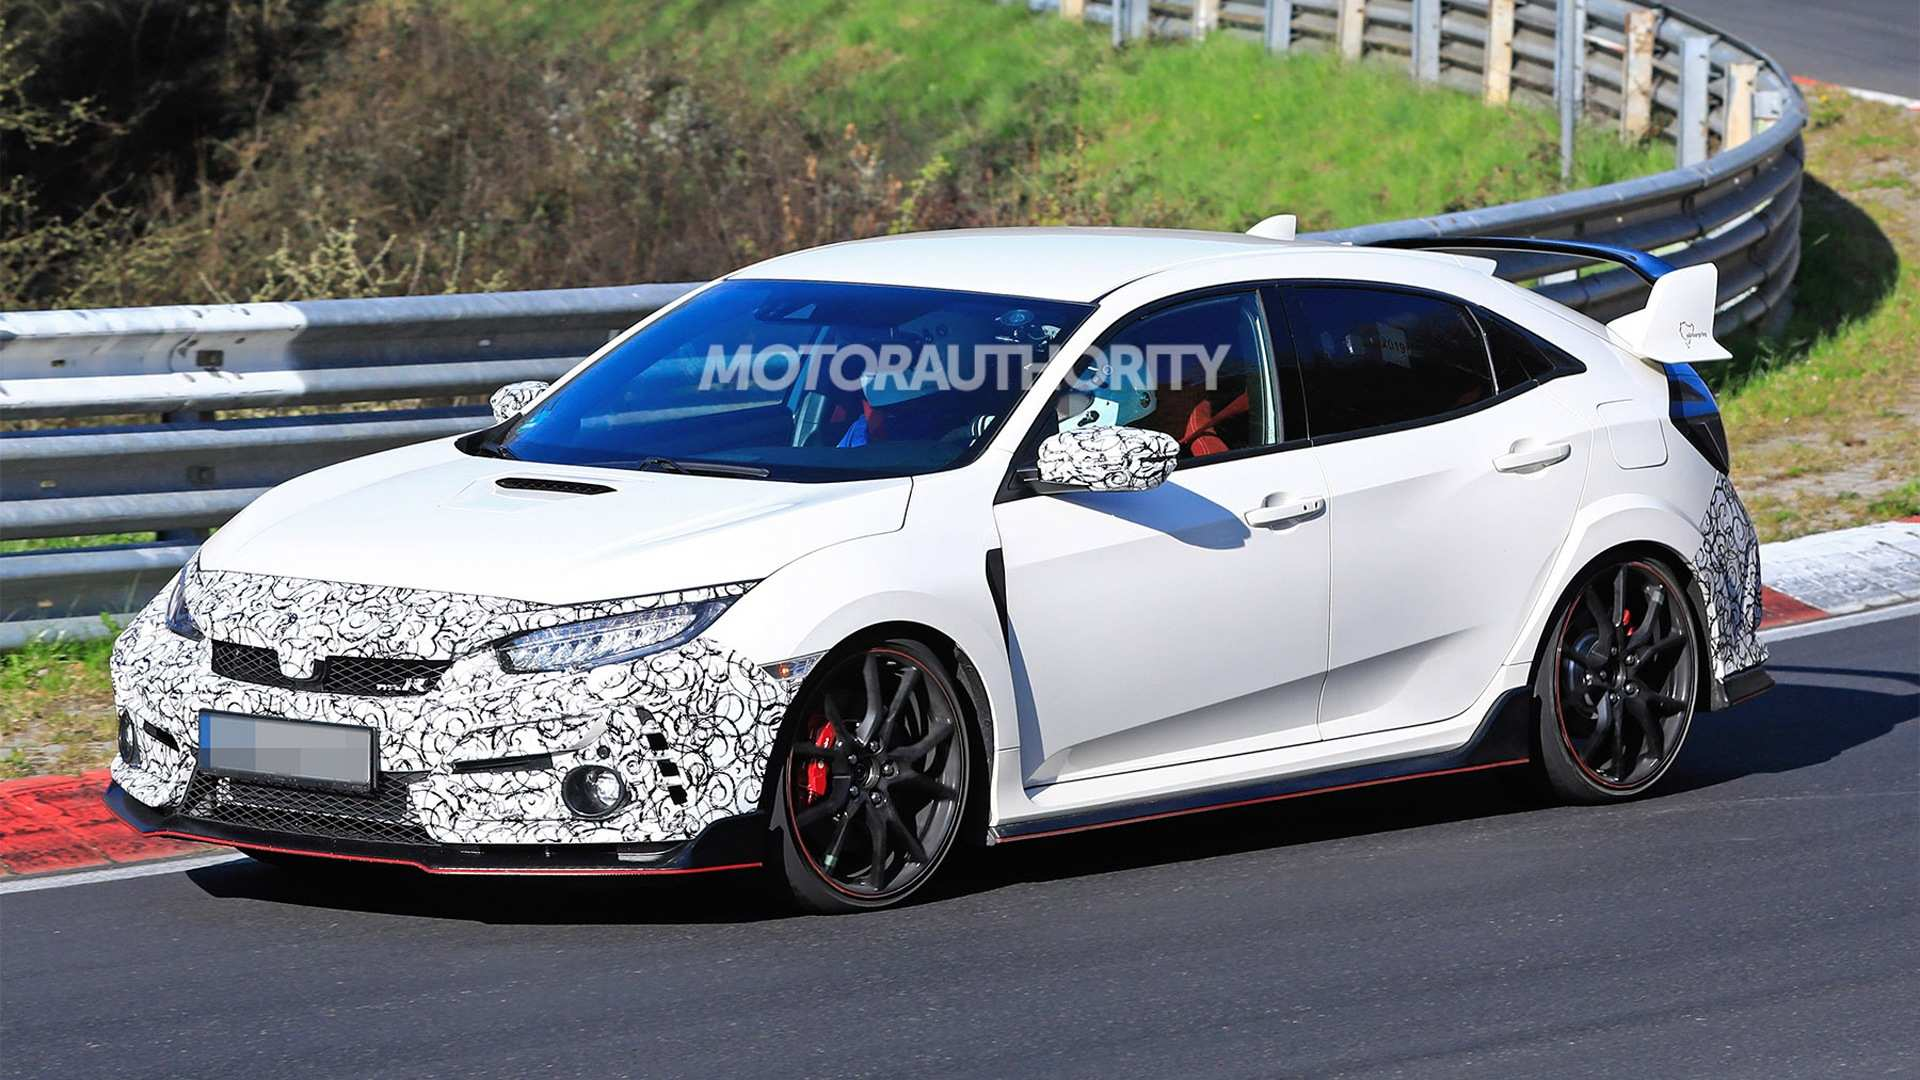 72 All New Honda Civic Type R 2020 First Drive for Honda Civic Type R 2020